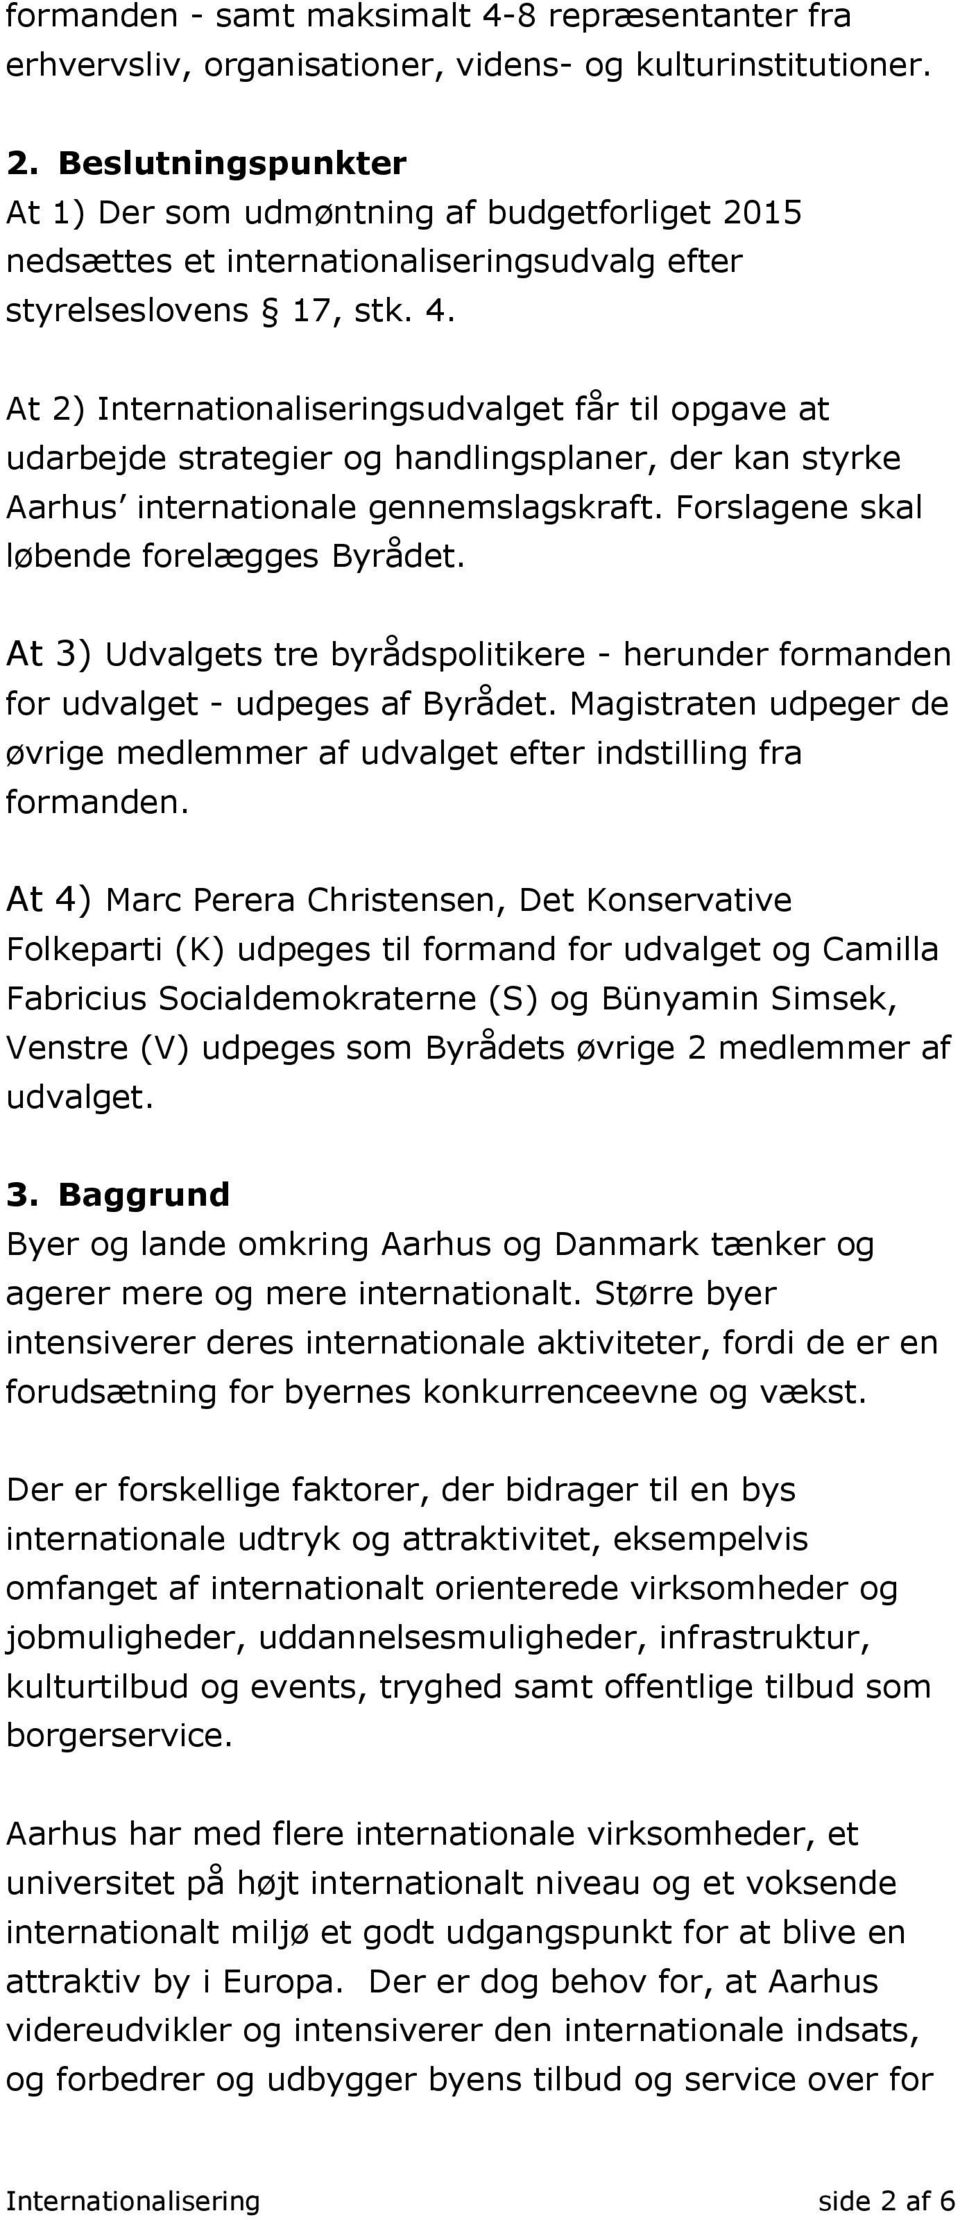 At 2) Internationaliseringsudvalget får til opgave at udarbejde strategier og handlingsplaner, der kan styrke Aarhus internationale gennemslagskraft. Forslagene skal løbende forelægges Byrådet.